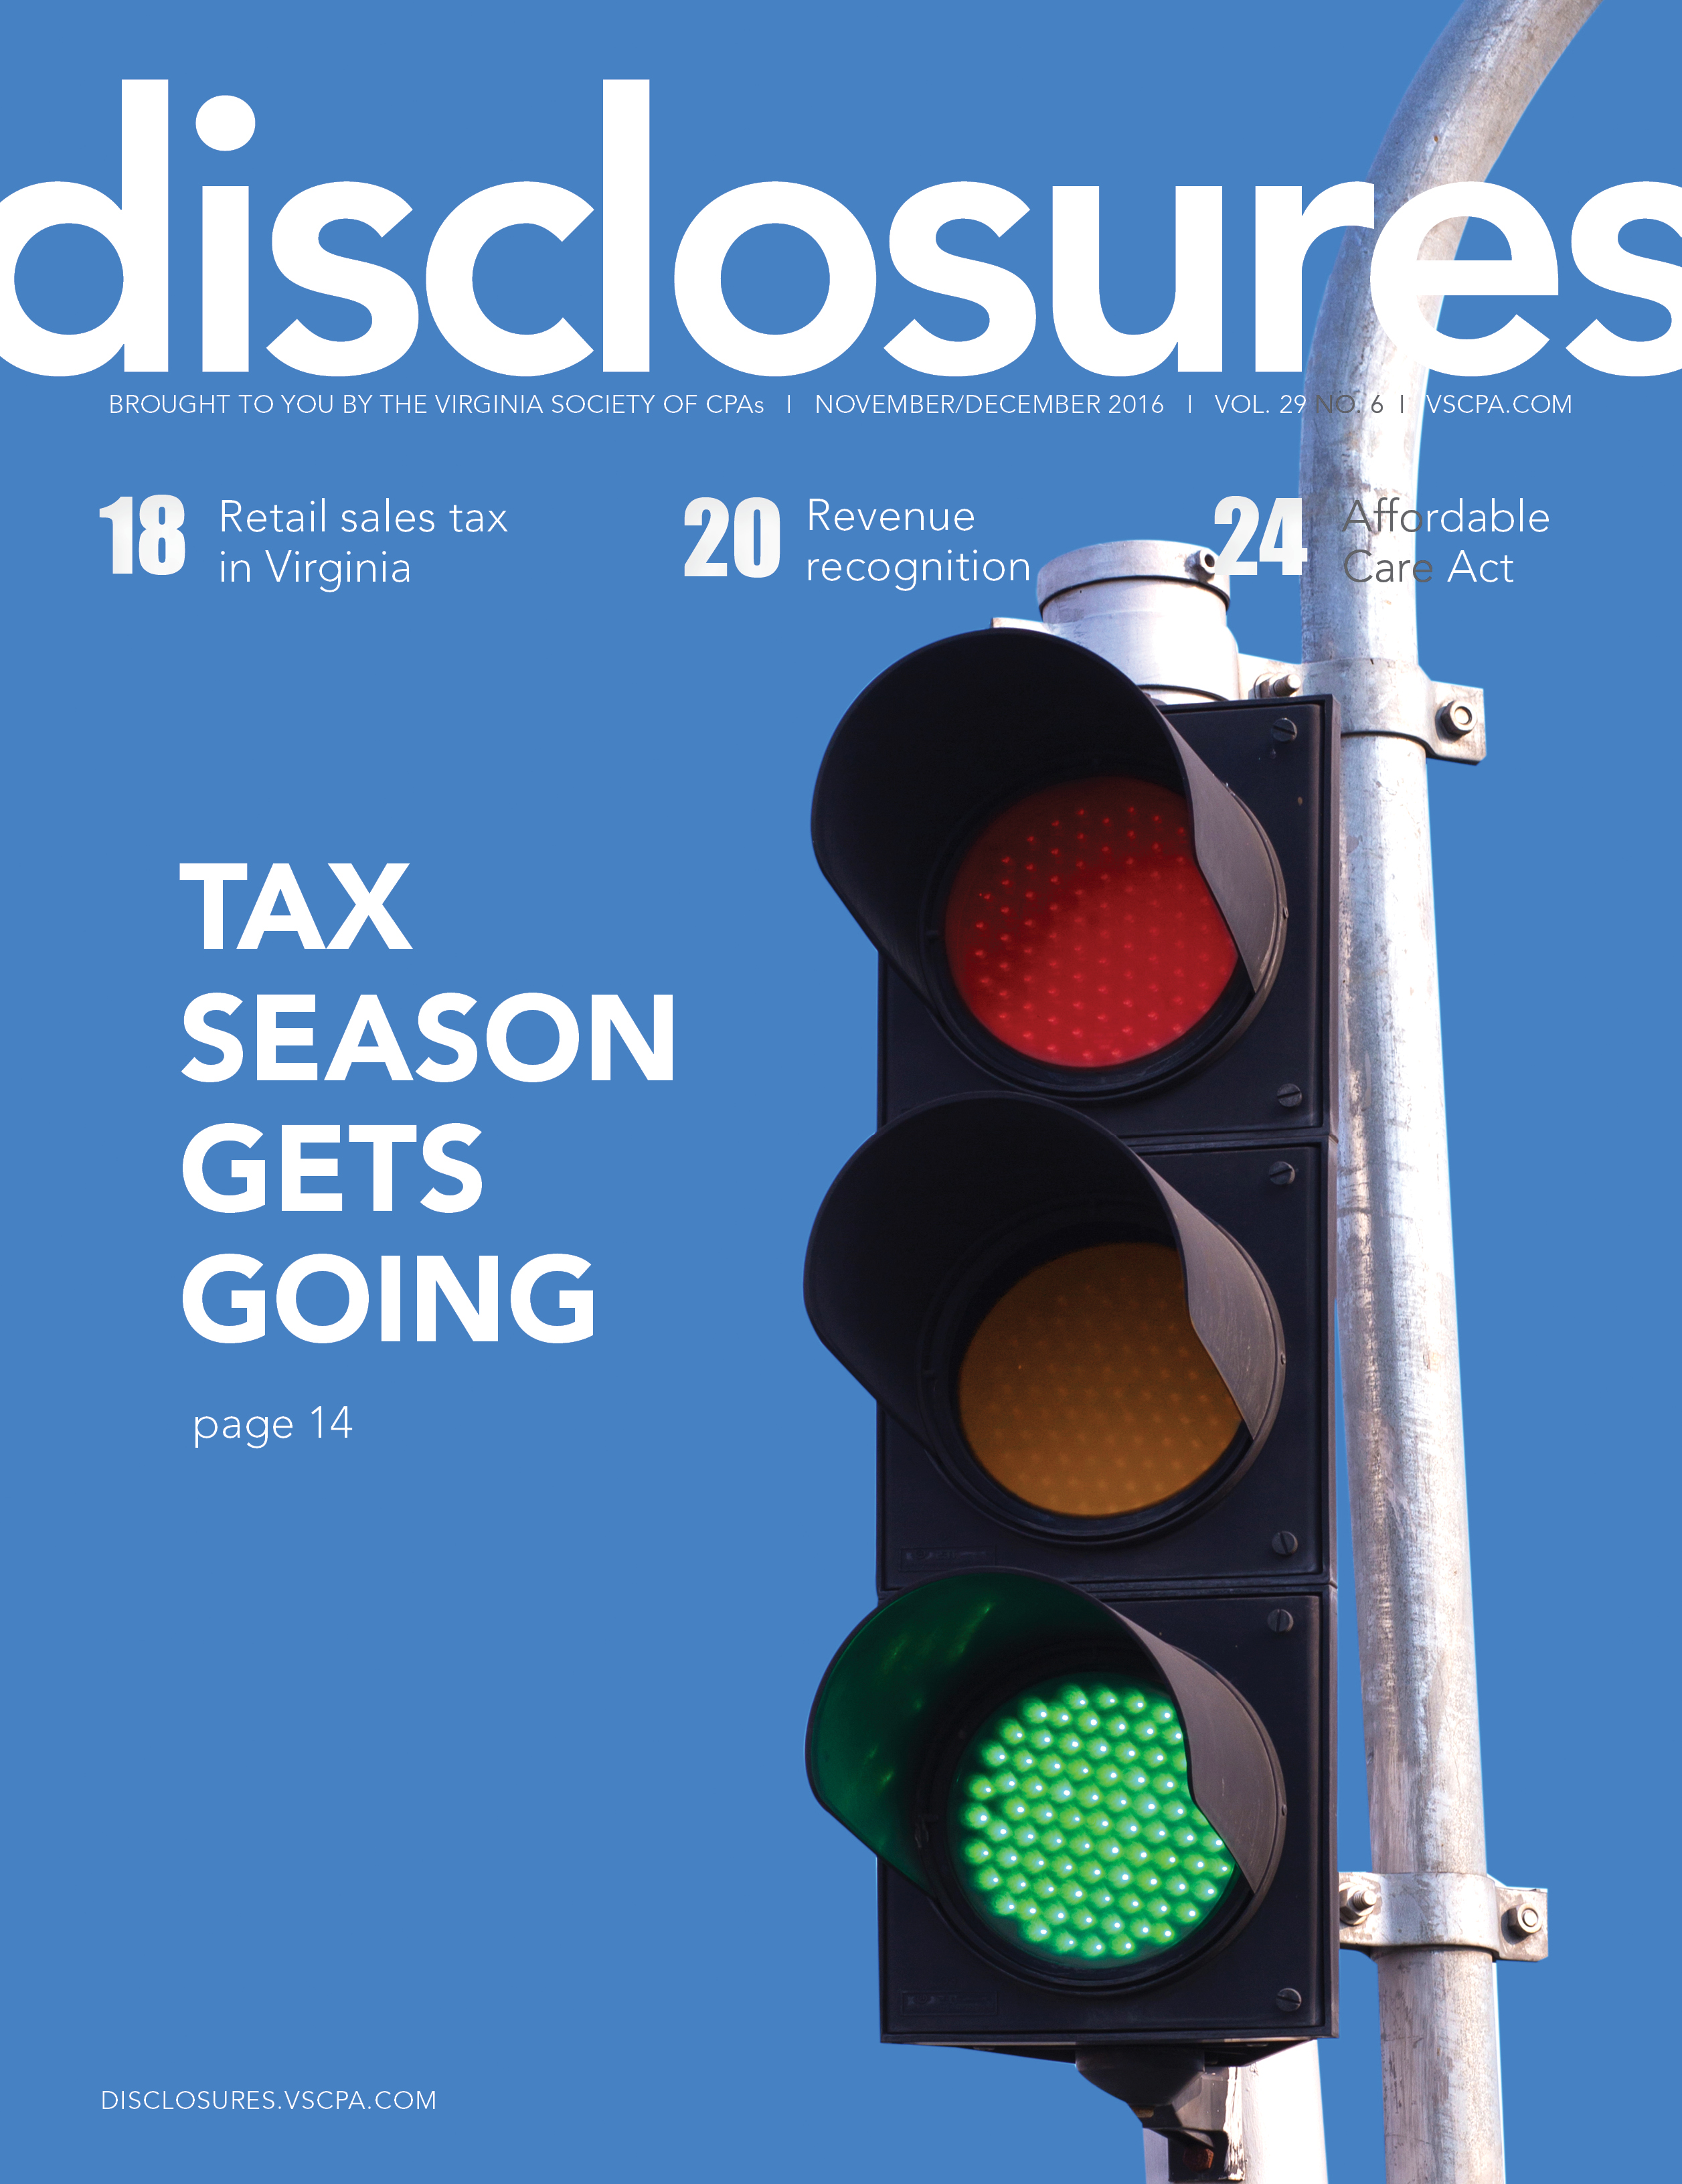 Cover of November/December 2016 issue of Disclosures